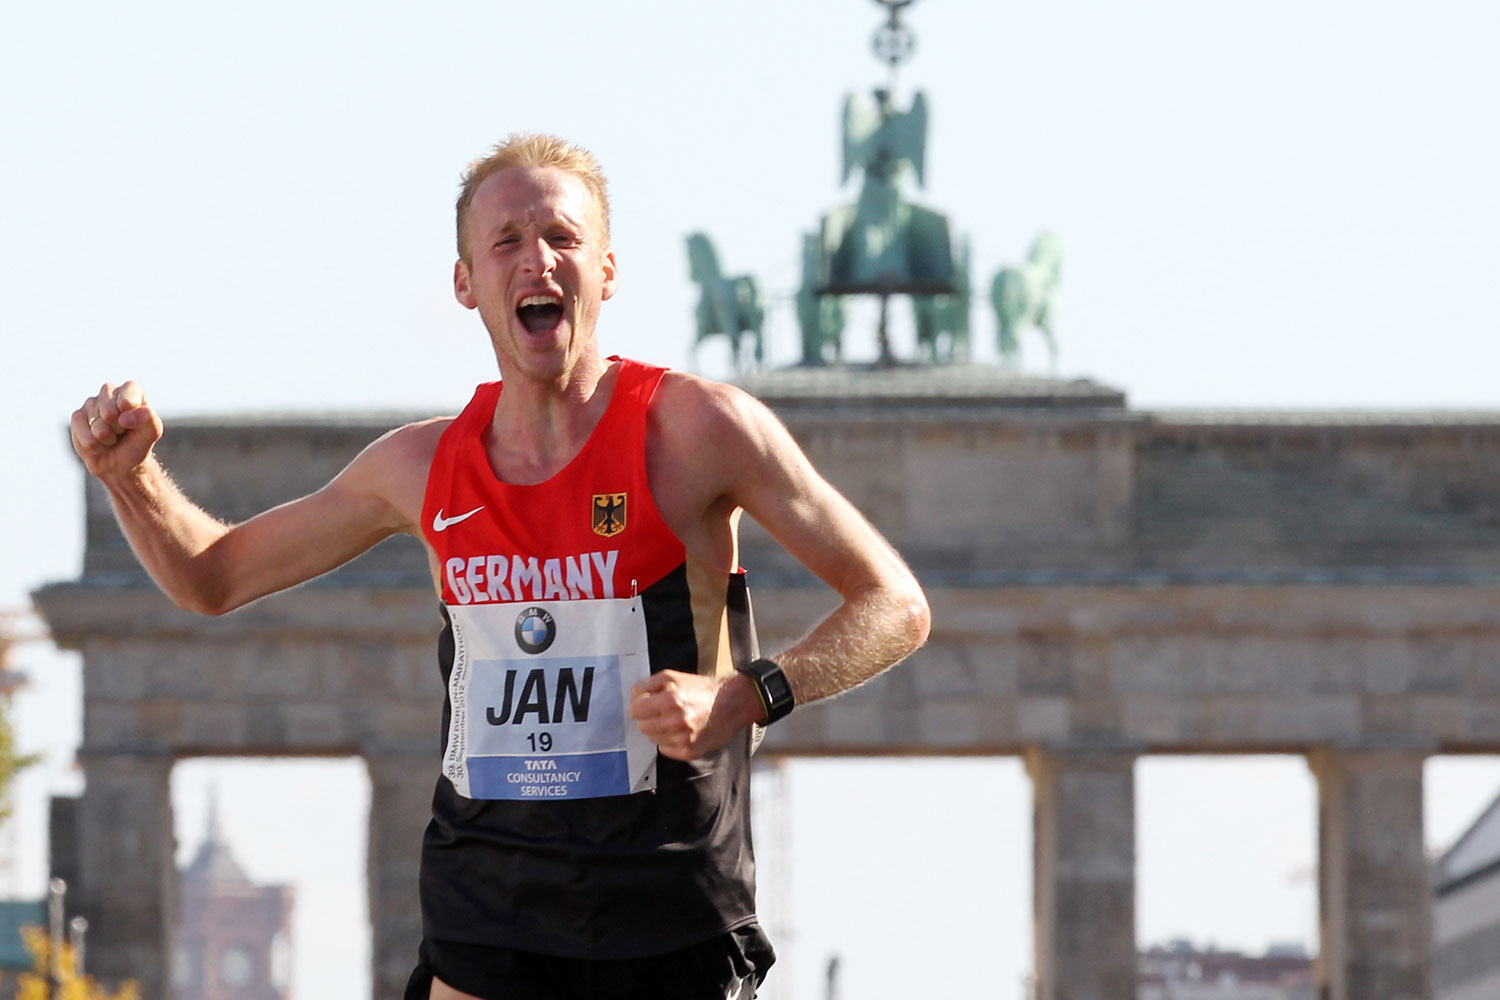 Jan Fitchen celebrates after crossing the finish line during the 39th Berlin Marathon in September 2012.